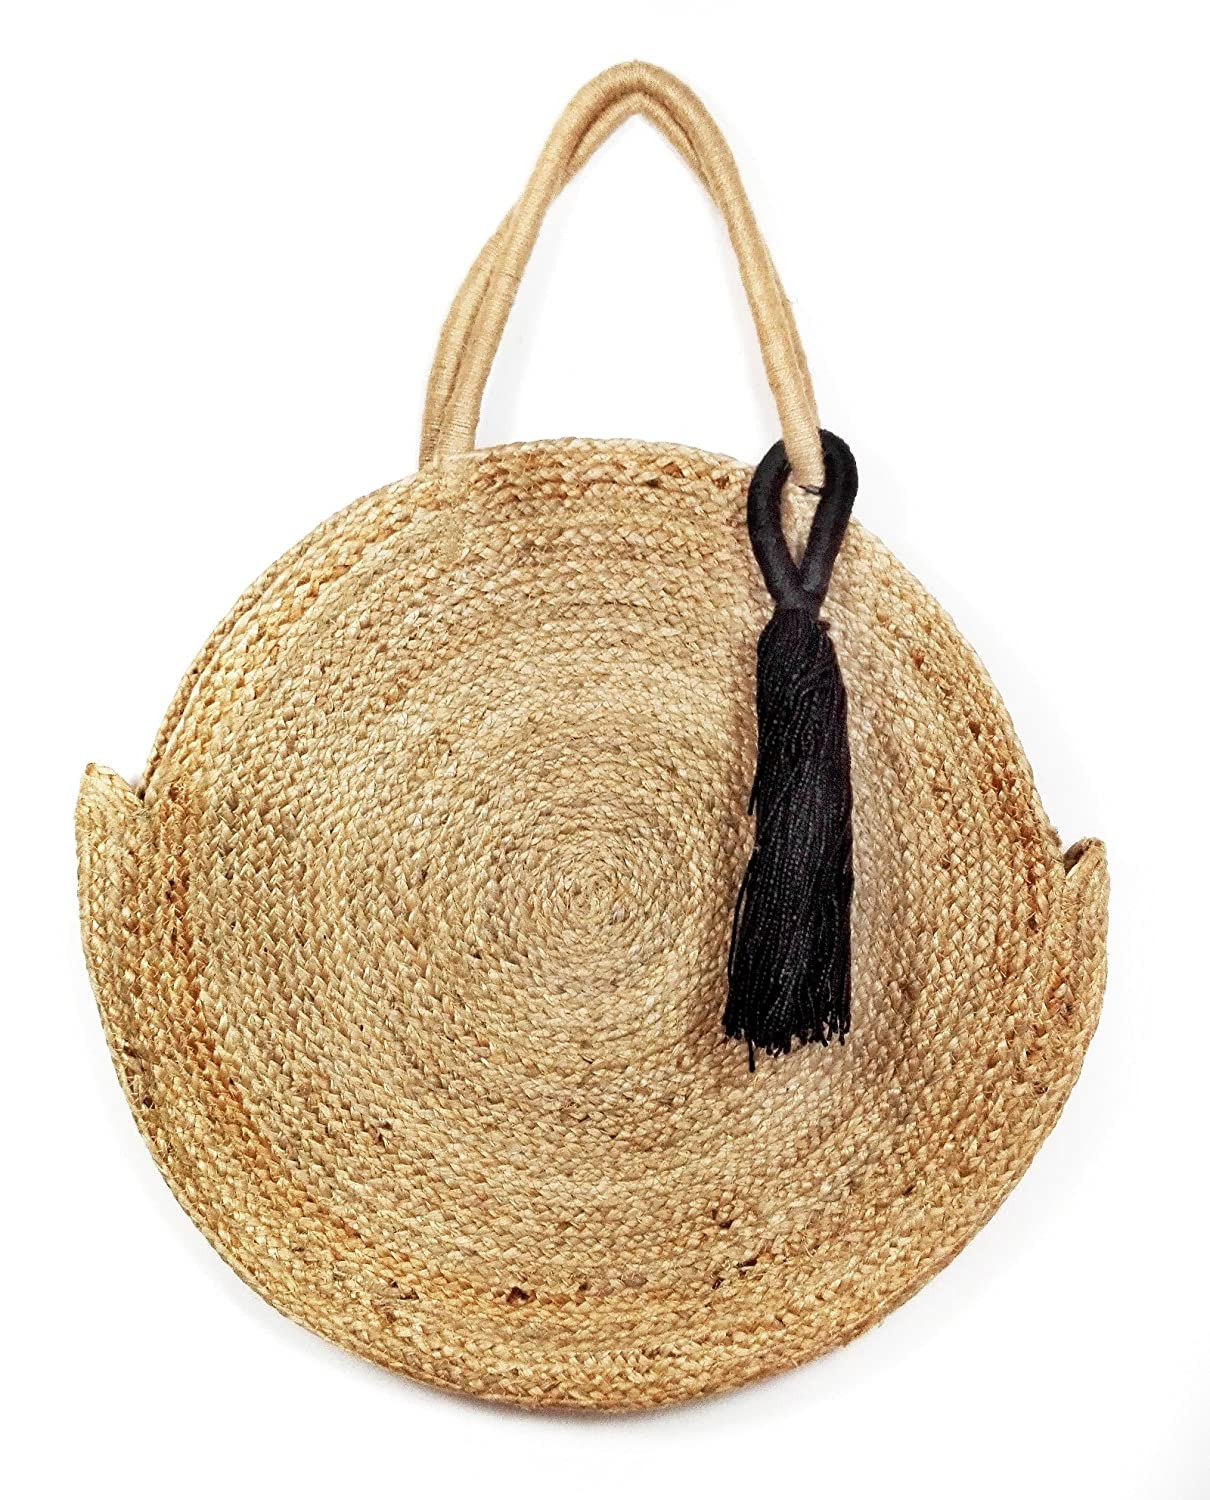 Zara Women Round Raffia Tote Bag 3156/304 by Zara